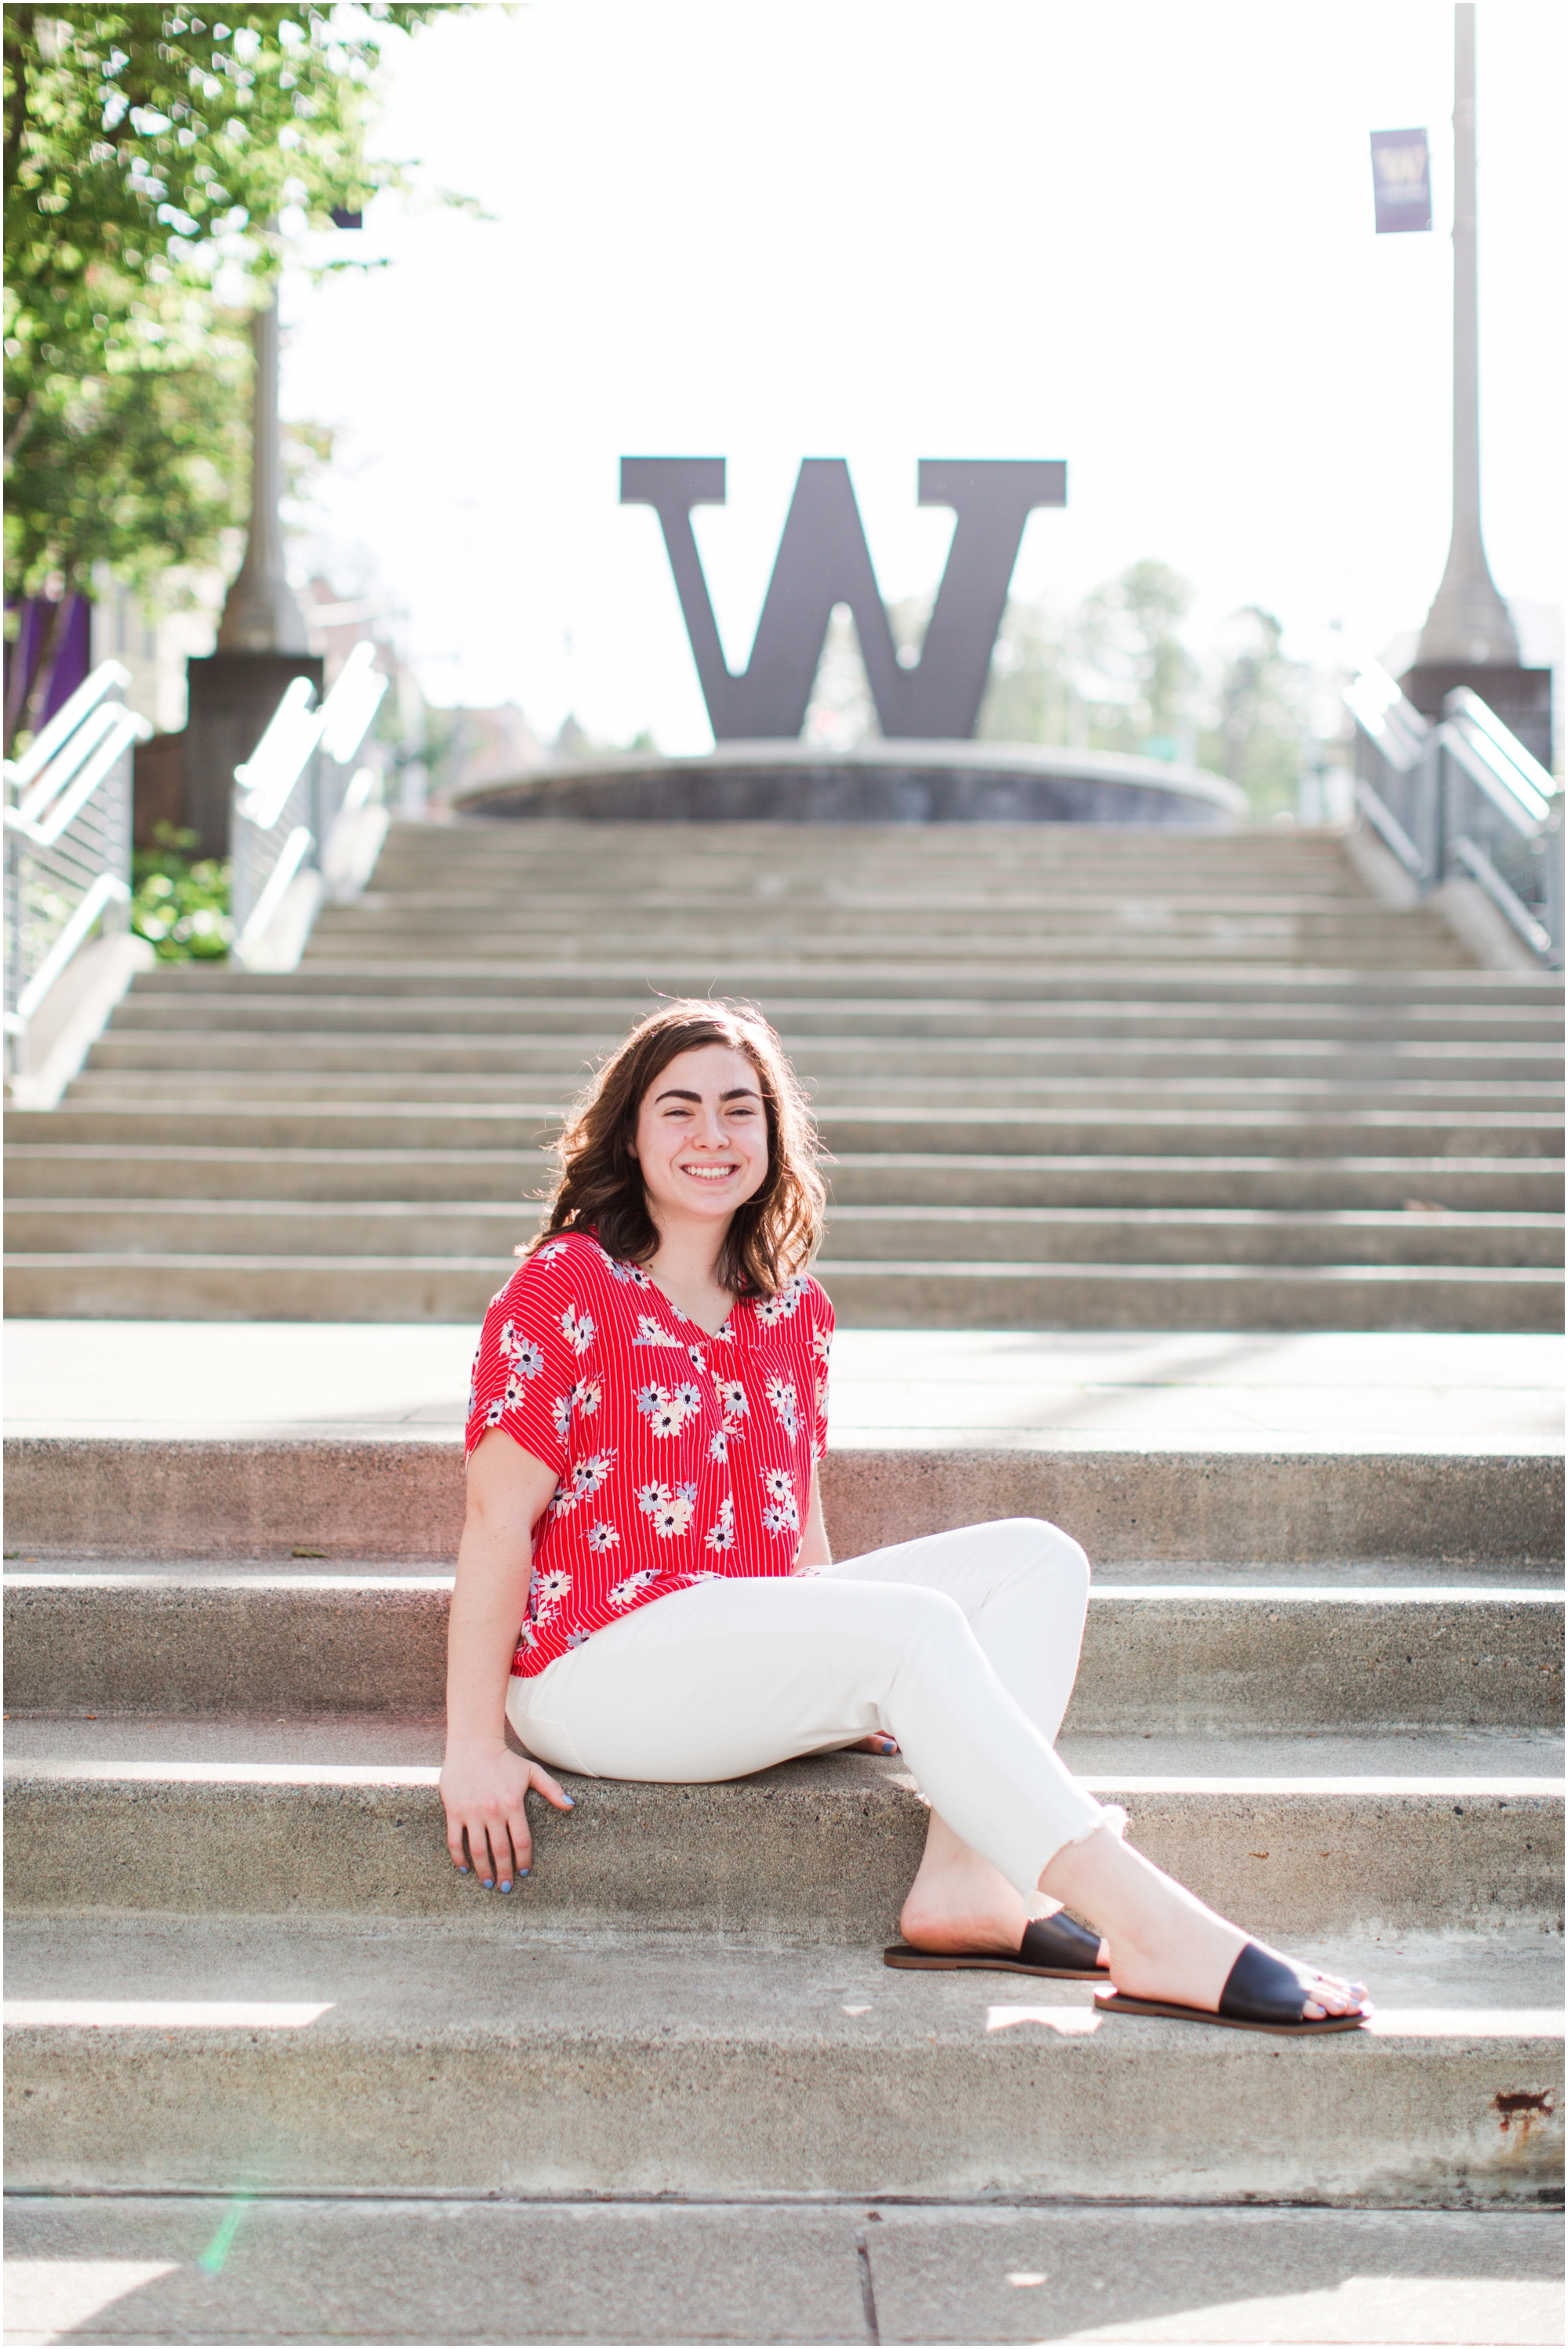 Senior portrait shoot at UW Tacoma campus and Bridge of Glass. Photos by Briana Calderon Photography based in the greater Seattle Area._1225.jpg